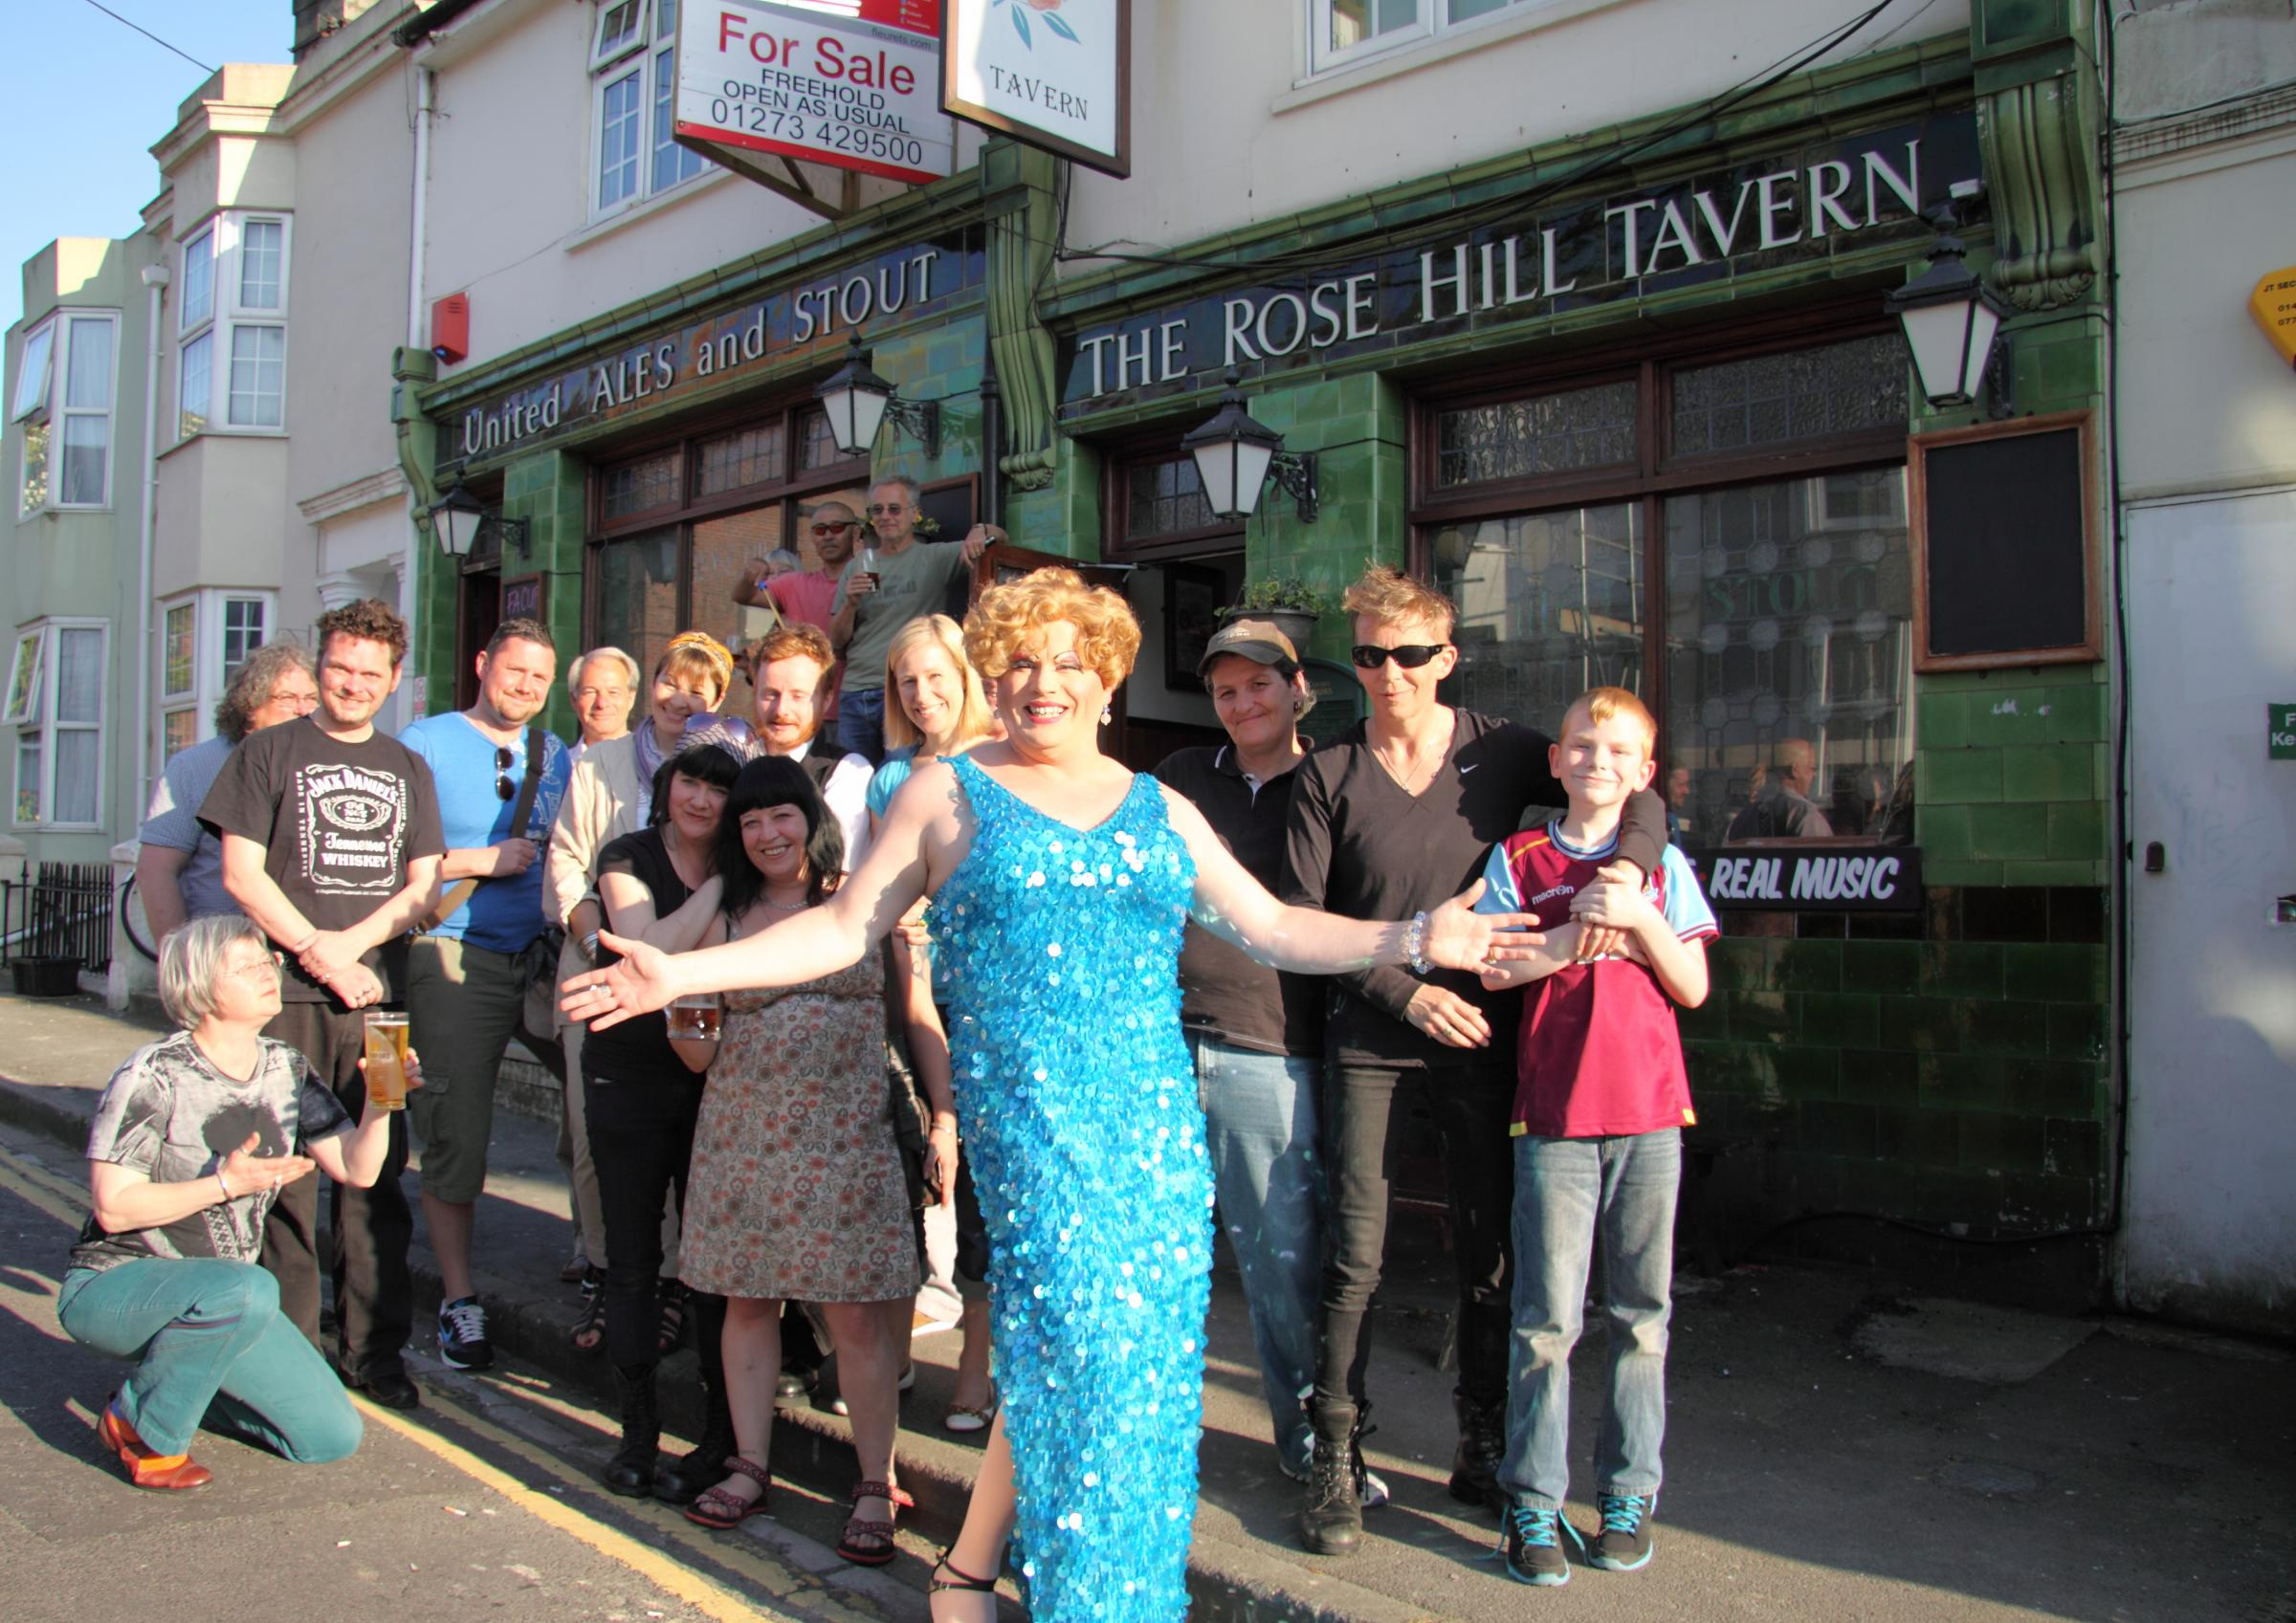 Campaign to save historic pub hots up